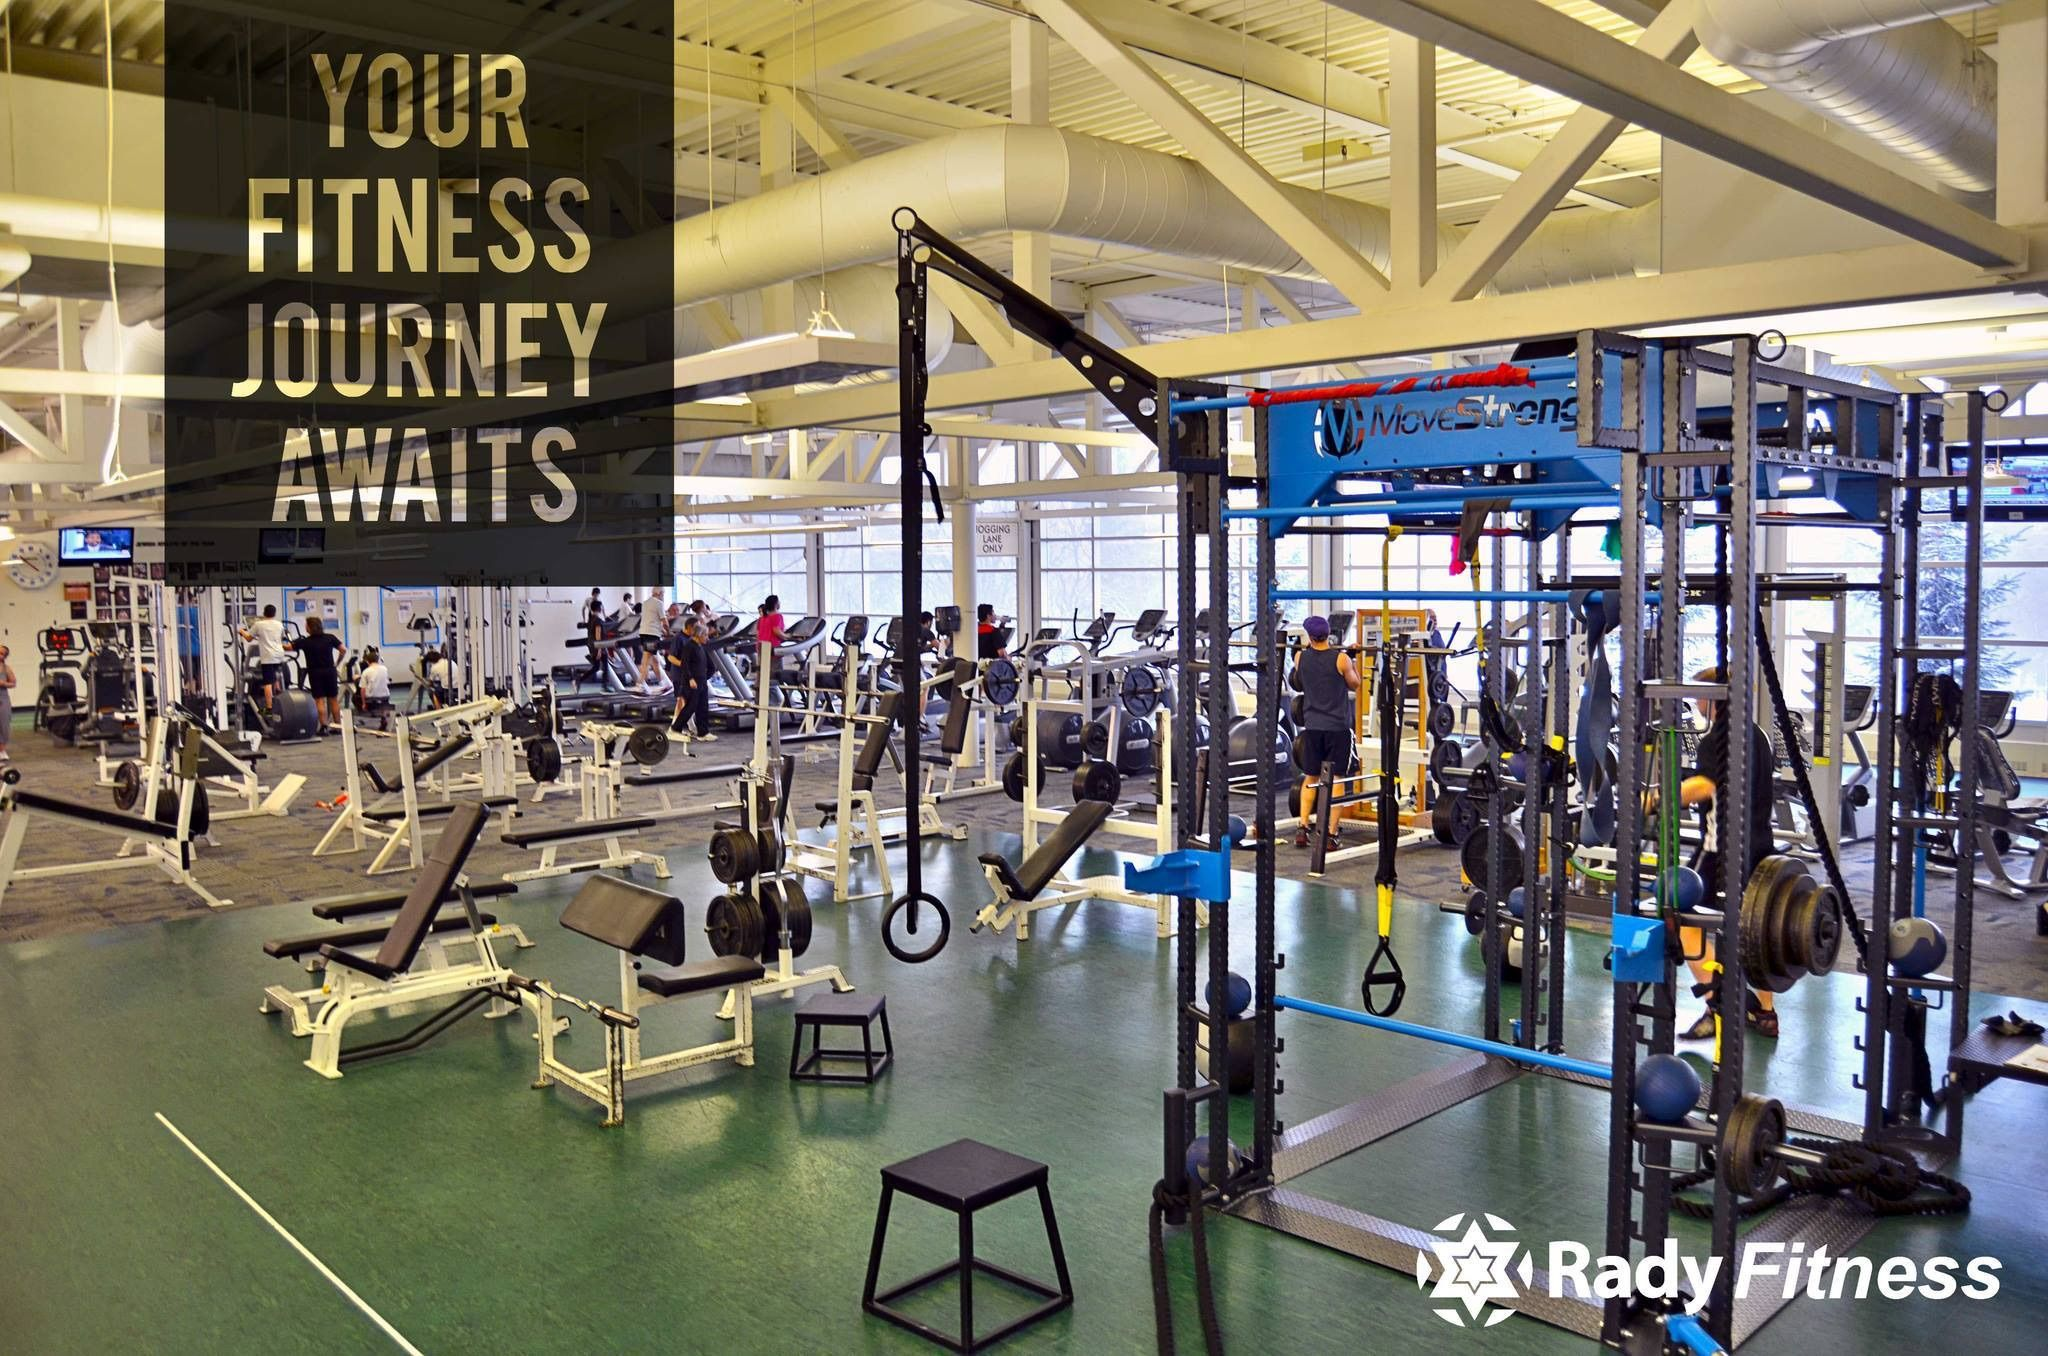 Rady Jcc Movestrong Club Fts Fitness Journey You Fitness Gym Equipment